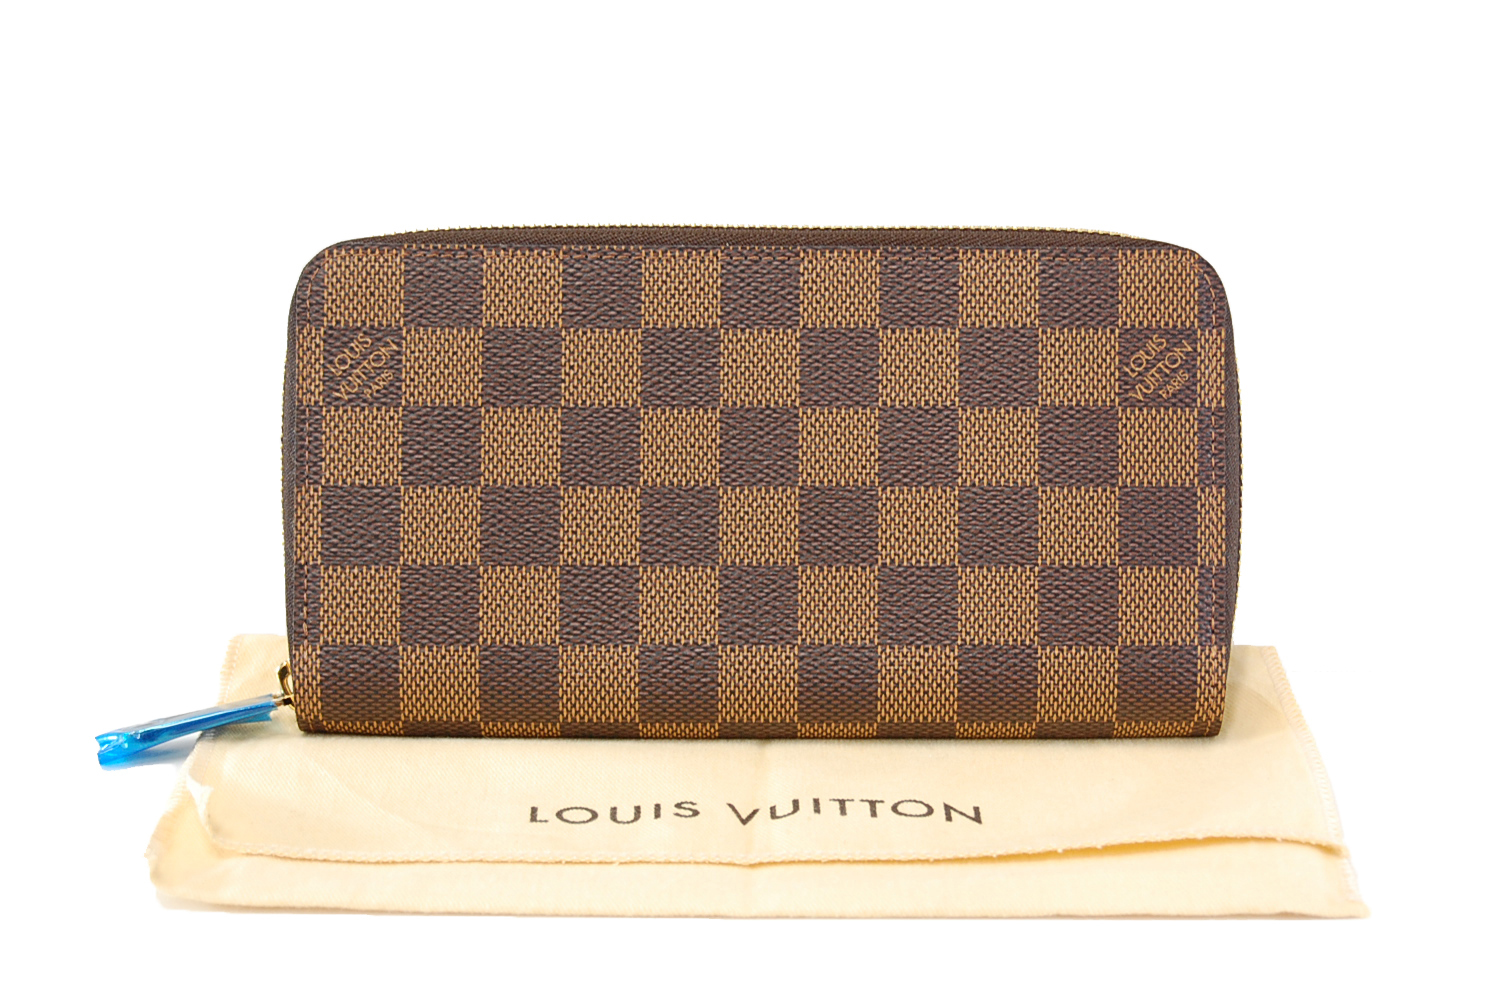 free shipping f248d 72e30 LOUIS VUITTON 【ルイヴィトン】 ラウンドファスナー長財布 店頭 ...